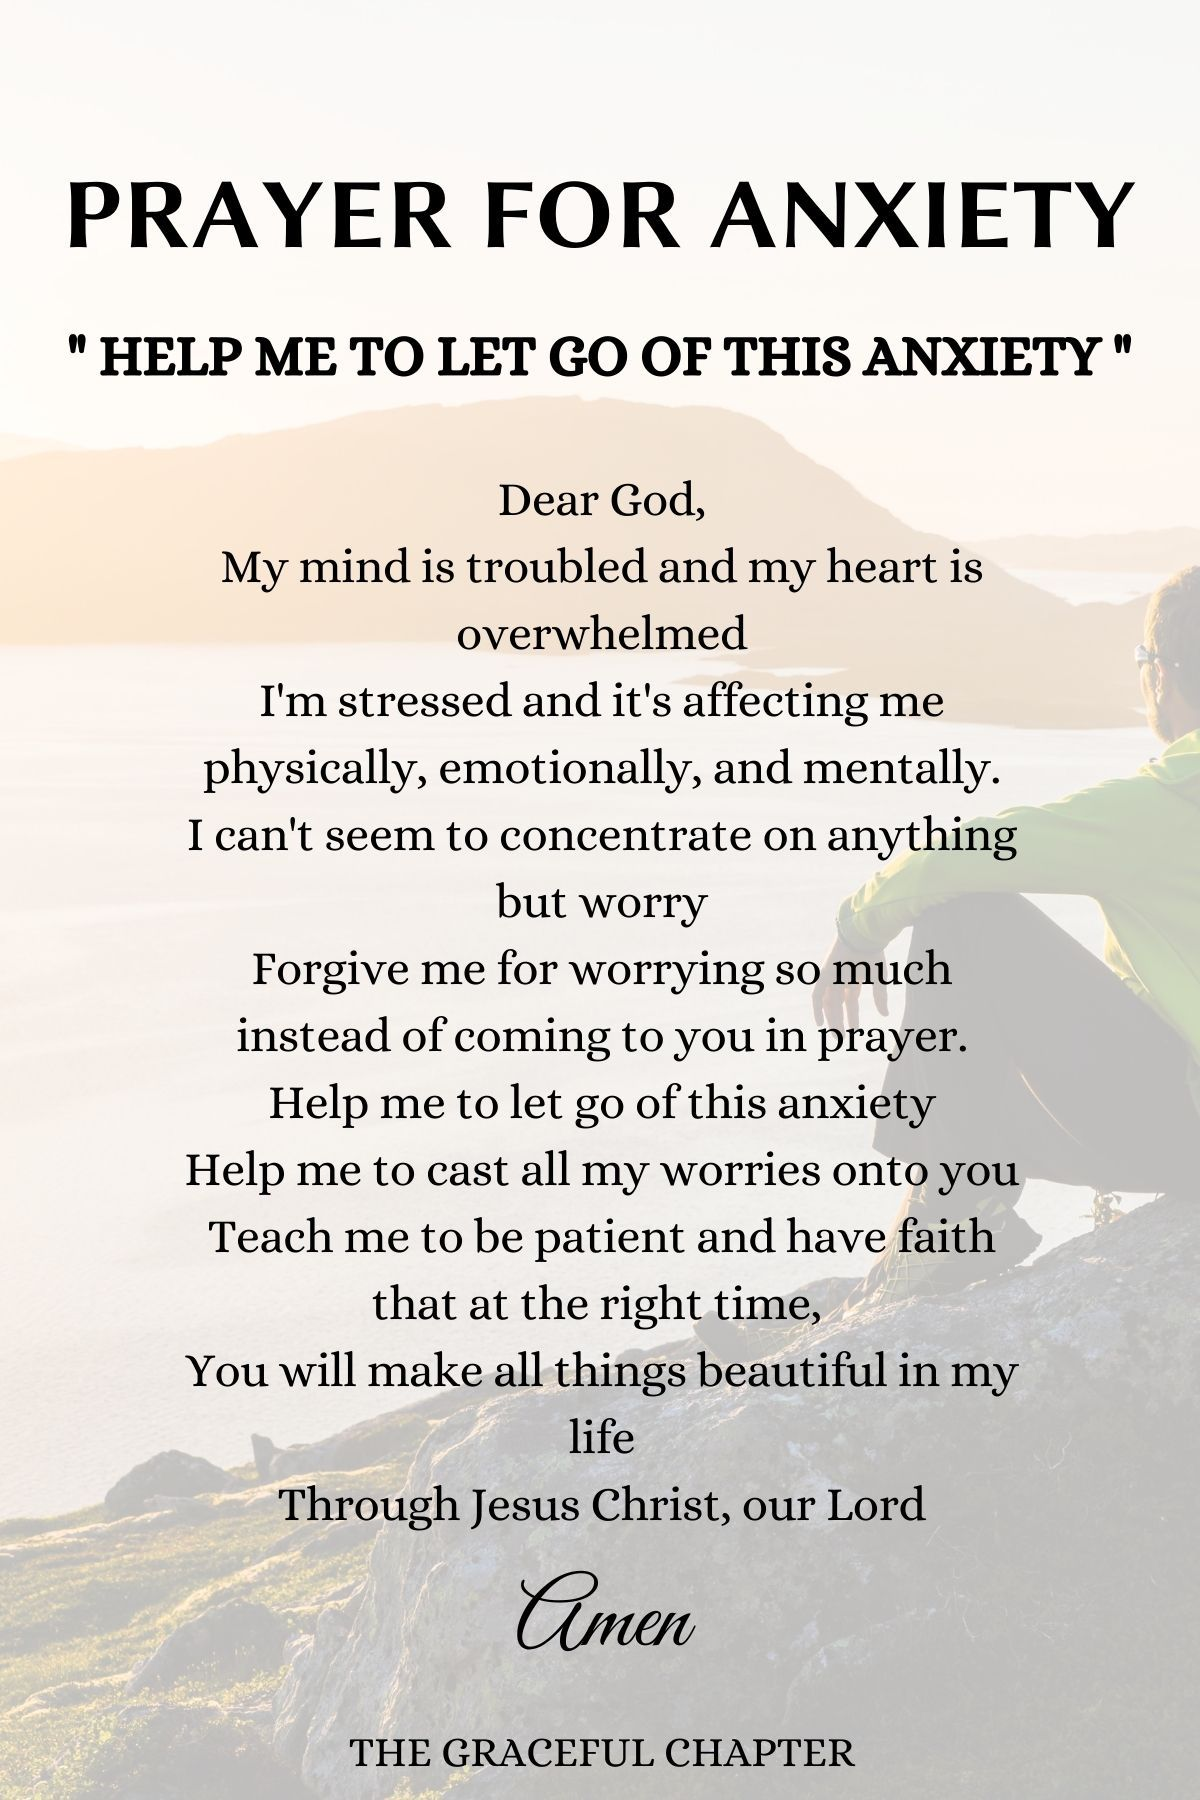 8 Prayers For Anxiety To Calm Your Soul - The Grac